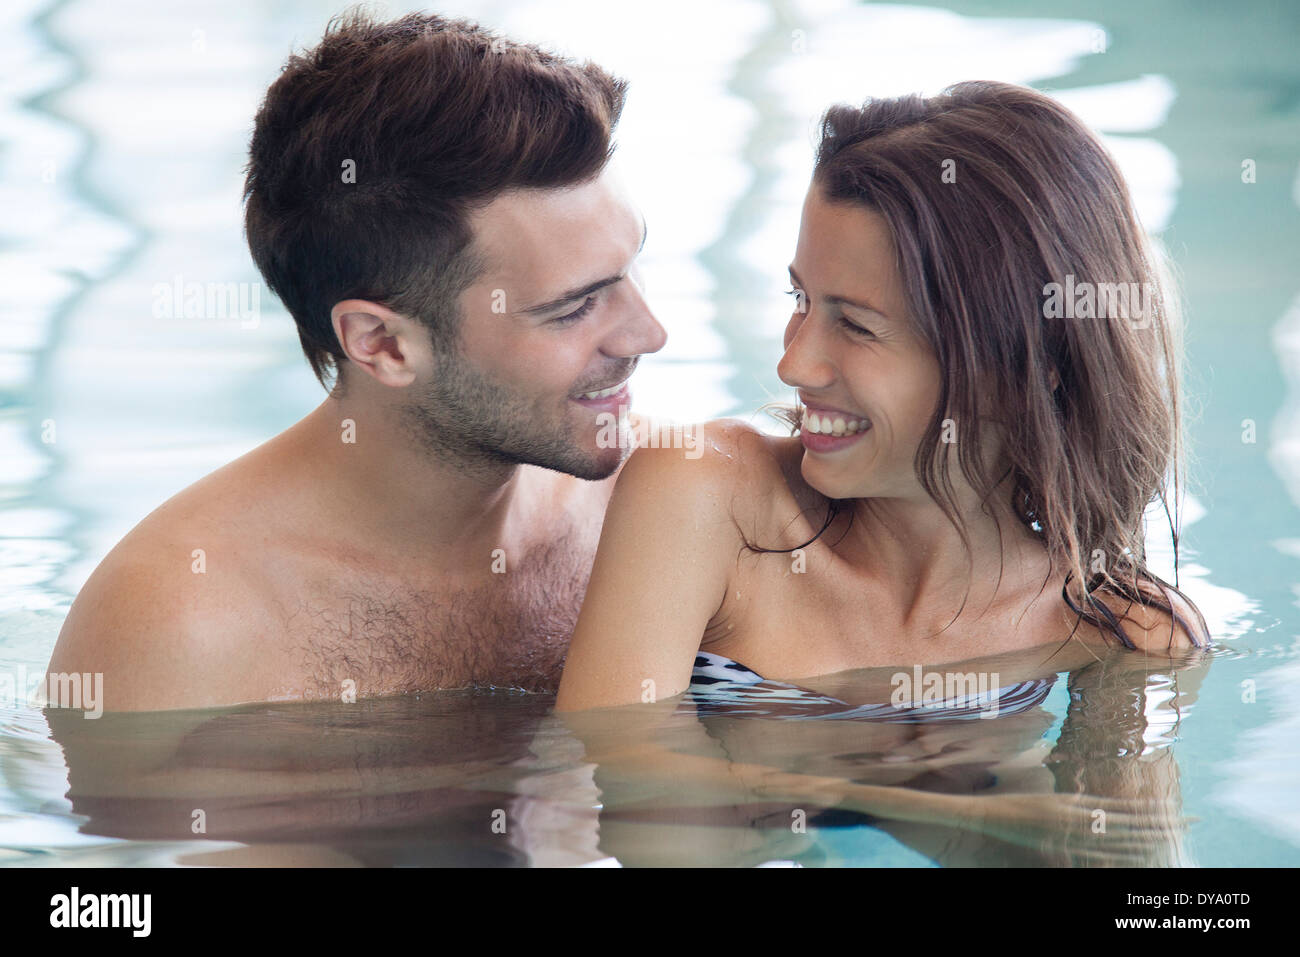 Couple in pool together - Stock Image